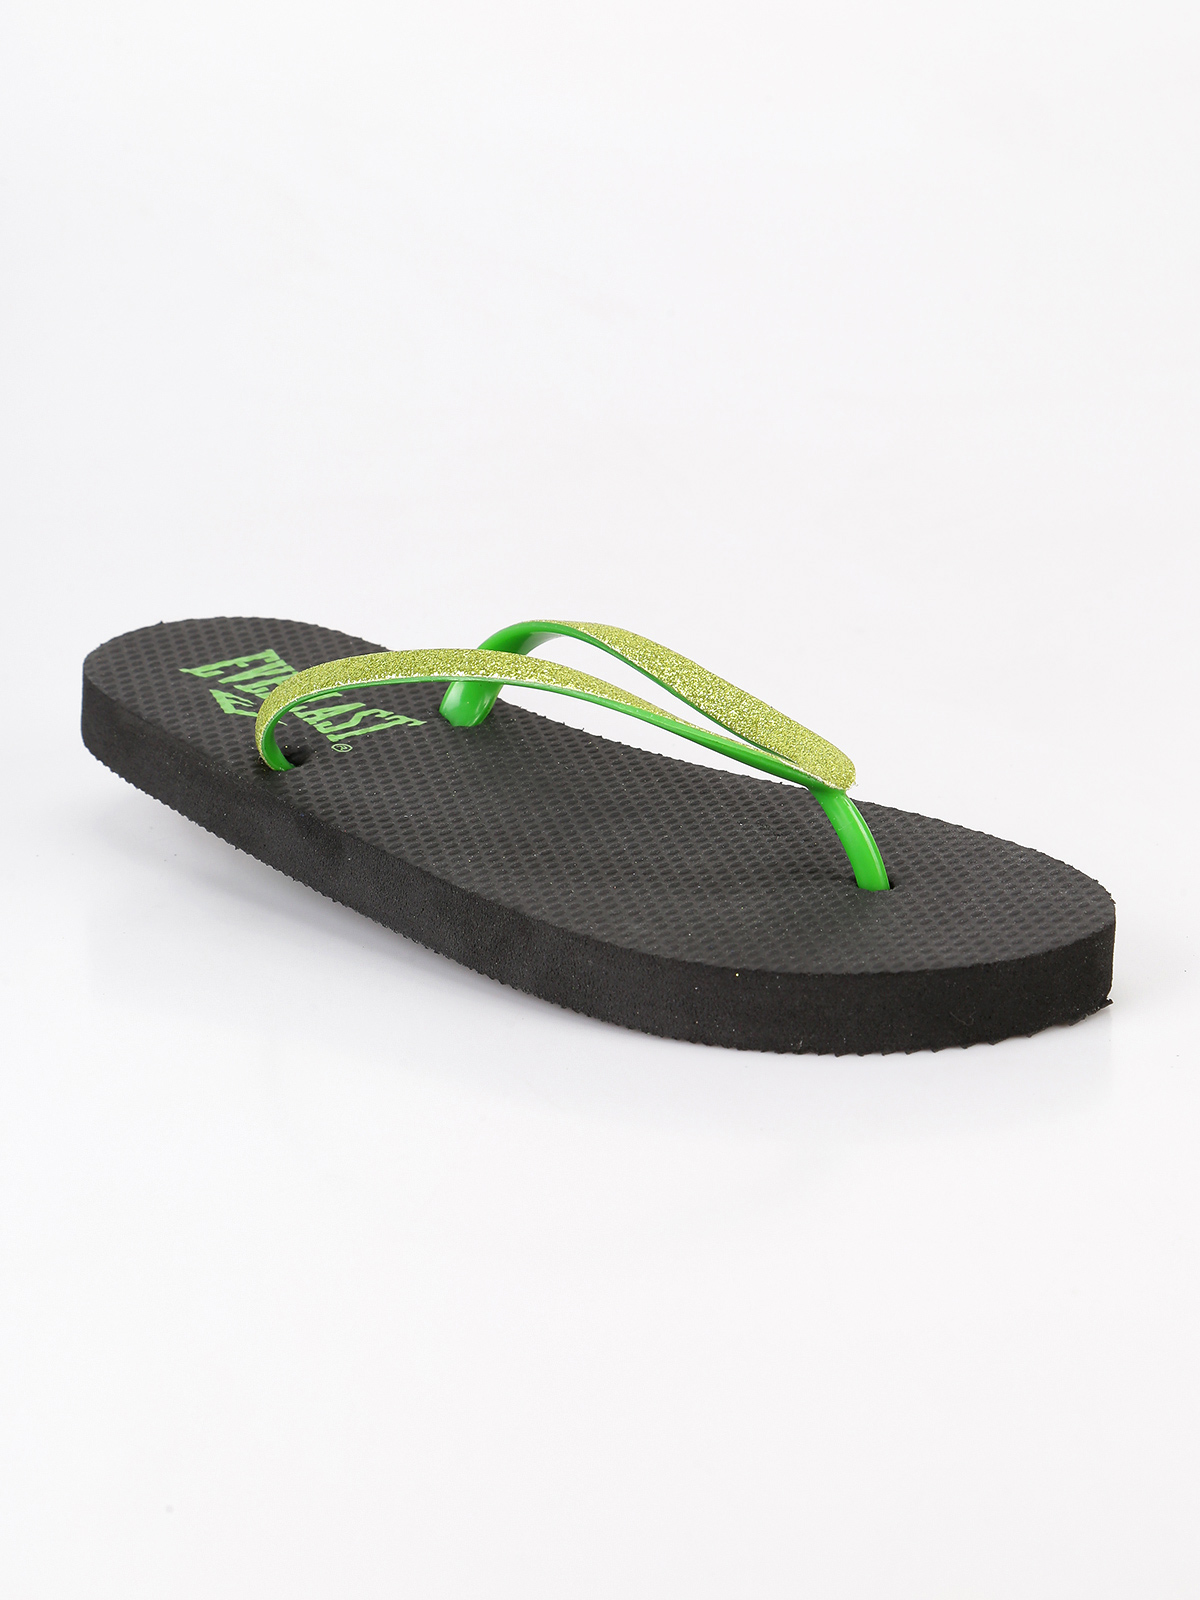 Flip Flops With Glitter Blackgreen-In Slippers From Shoes -1403